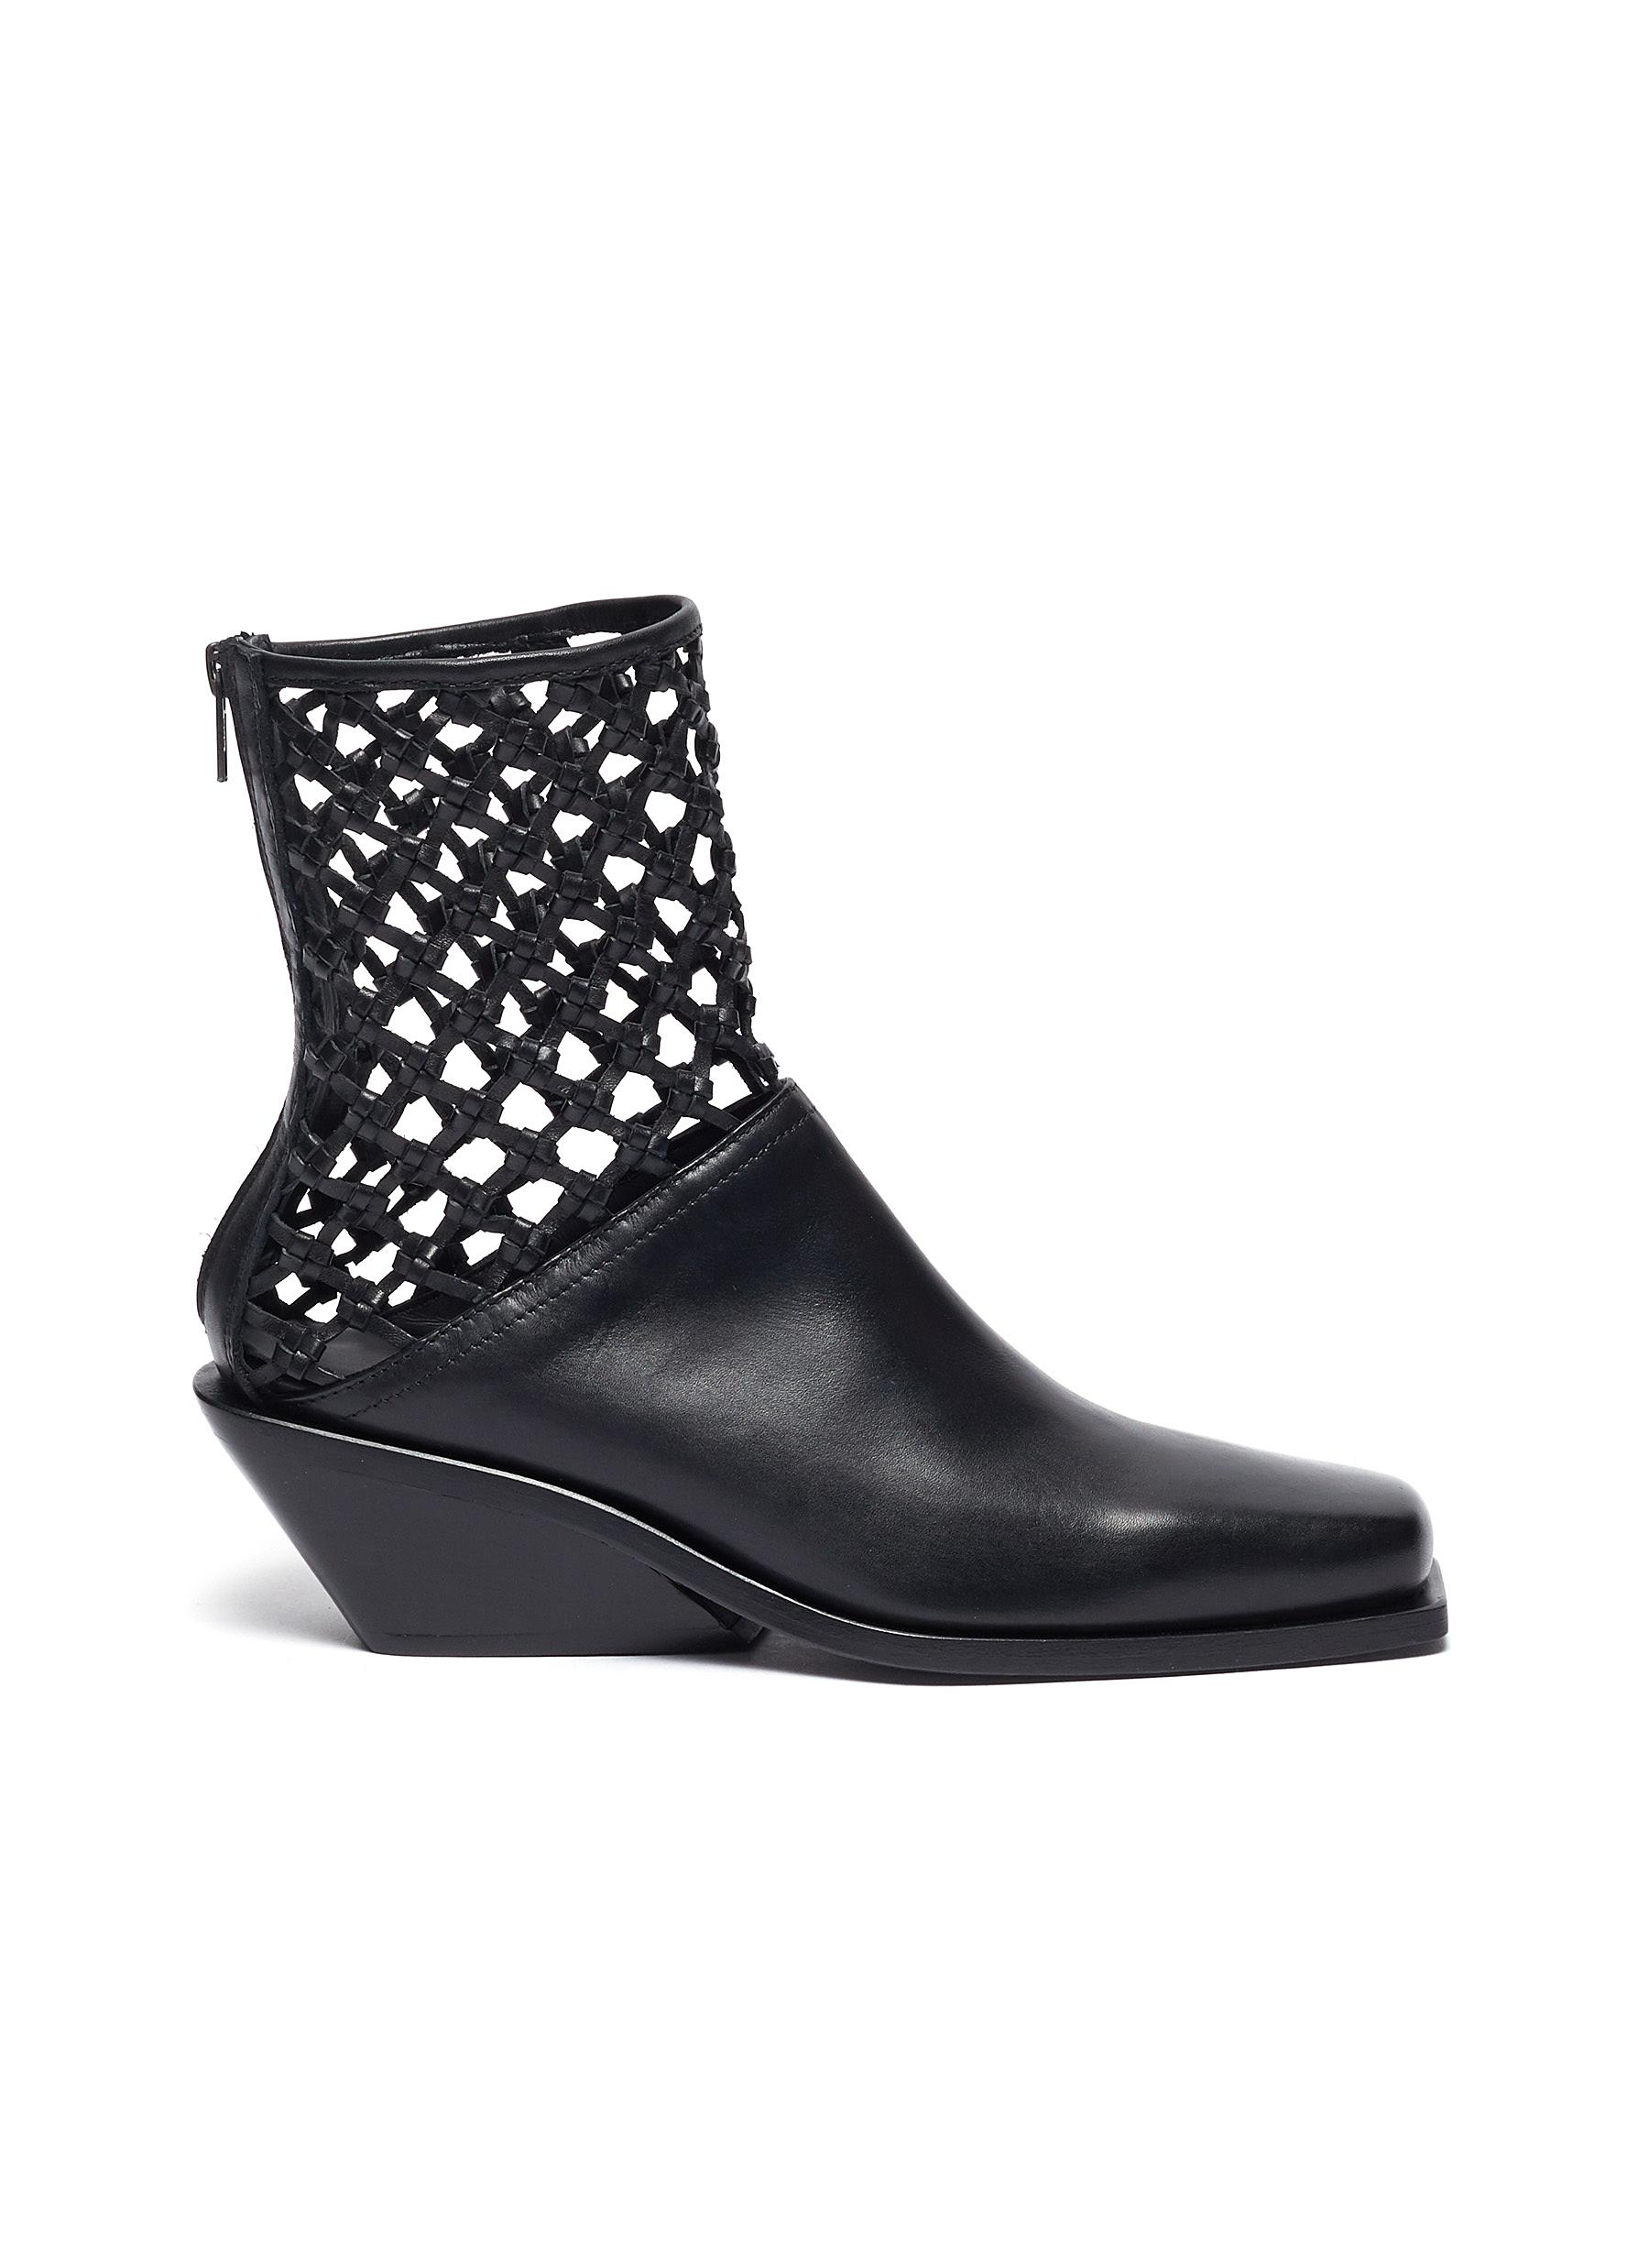 Open weave ankle leather boots by Ann Demeulemeester